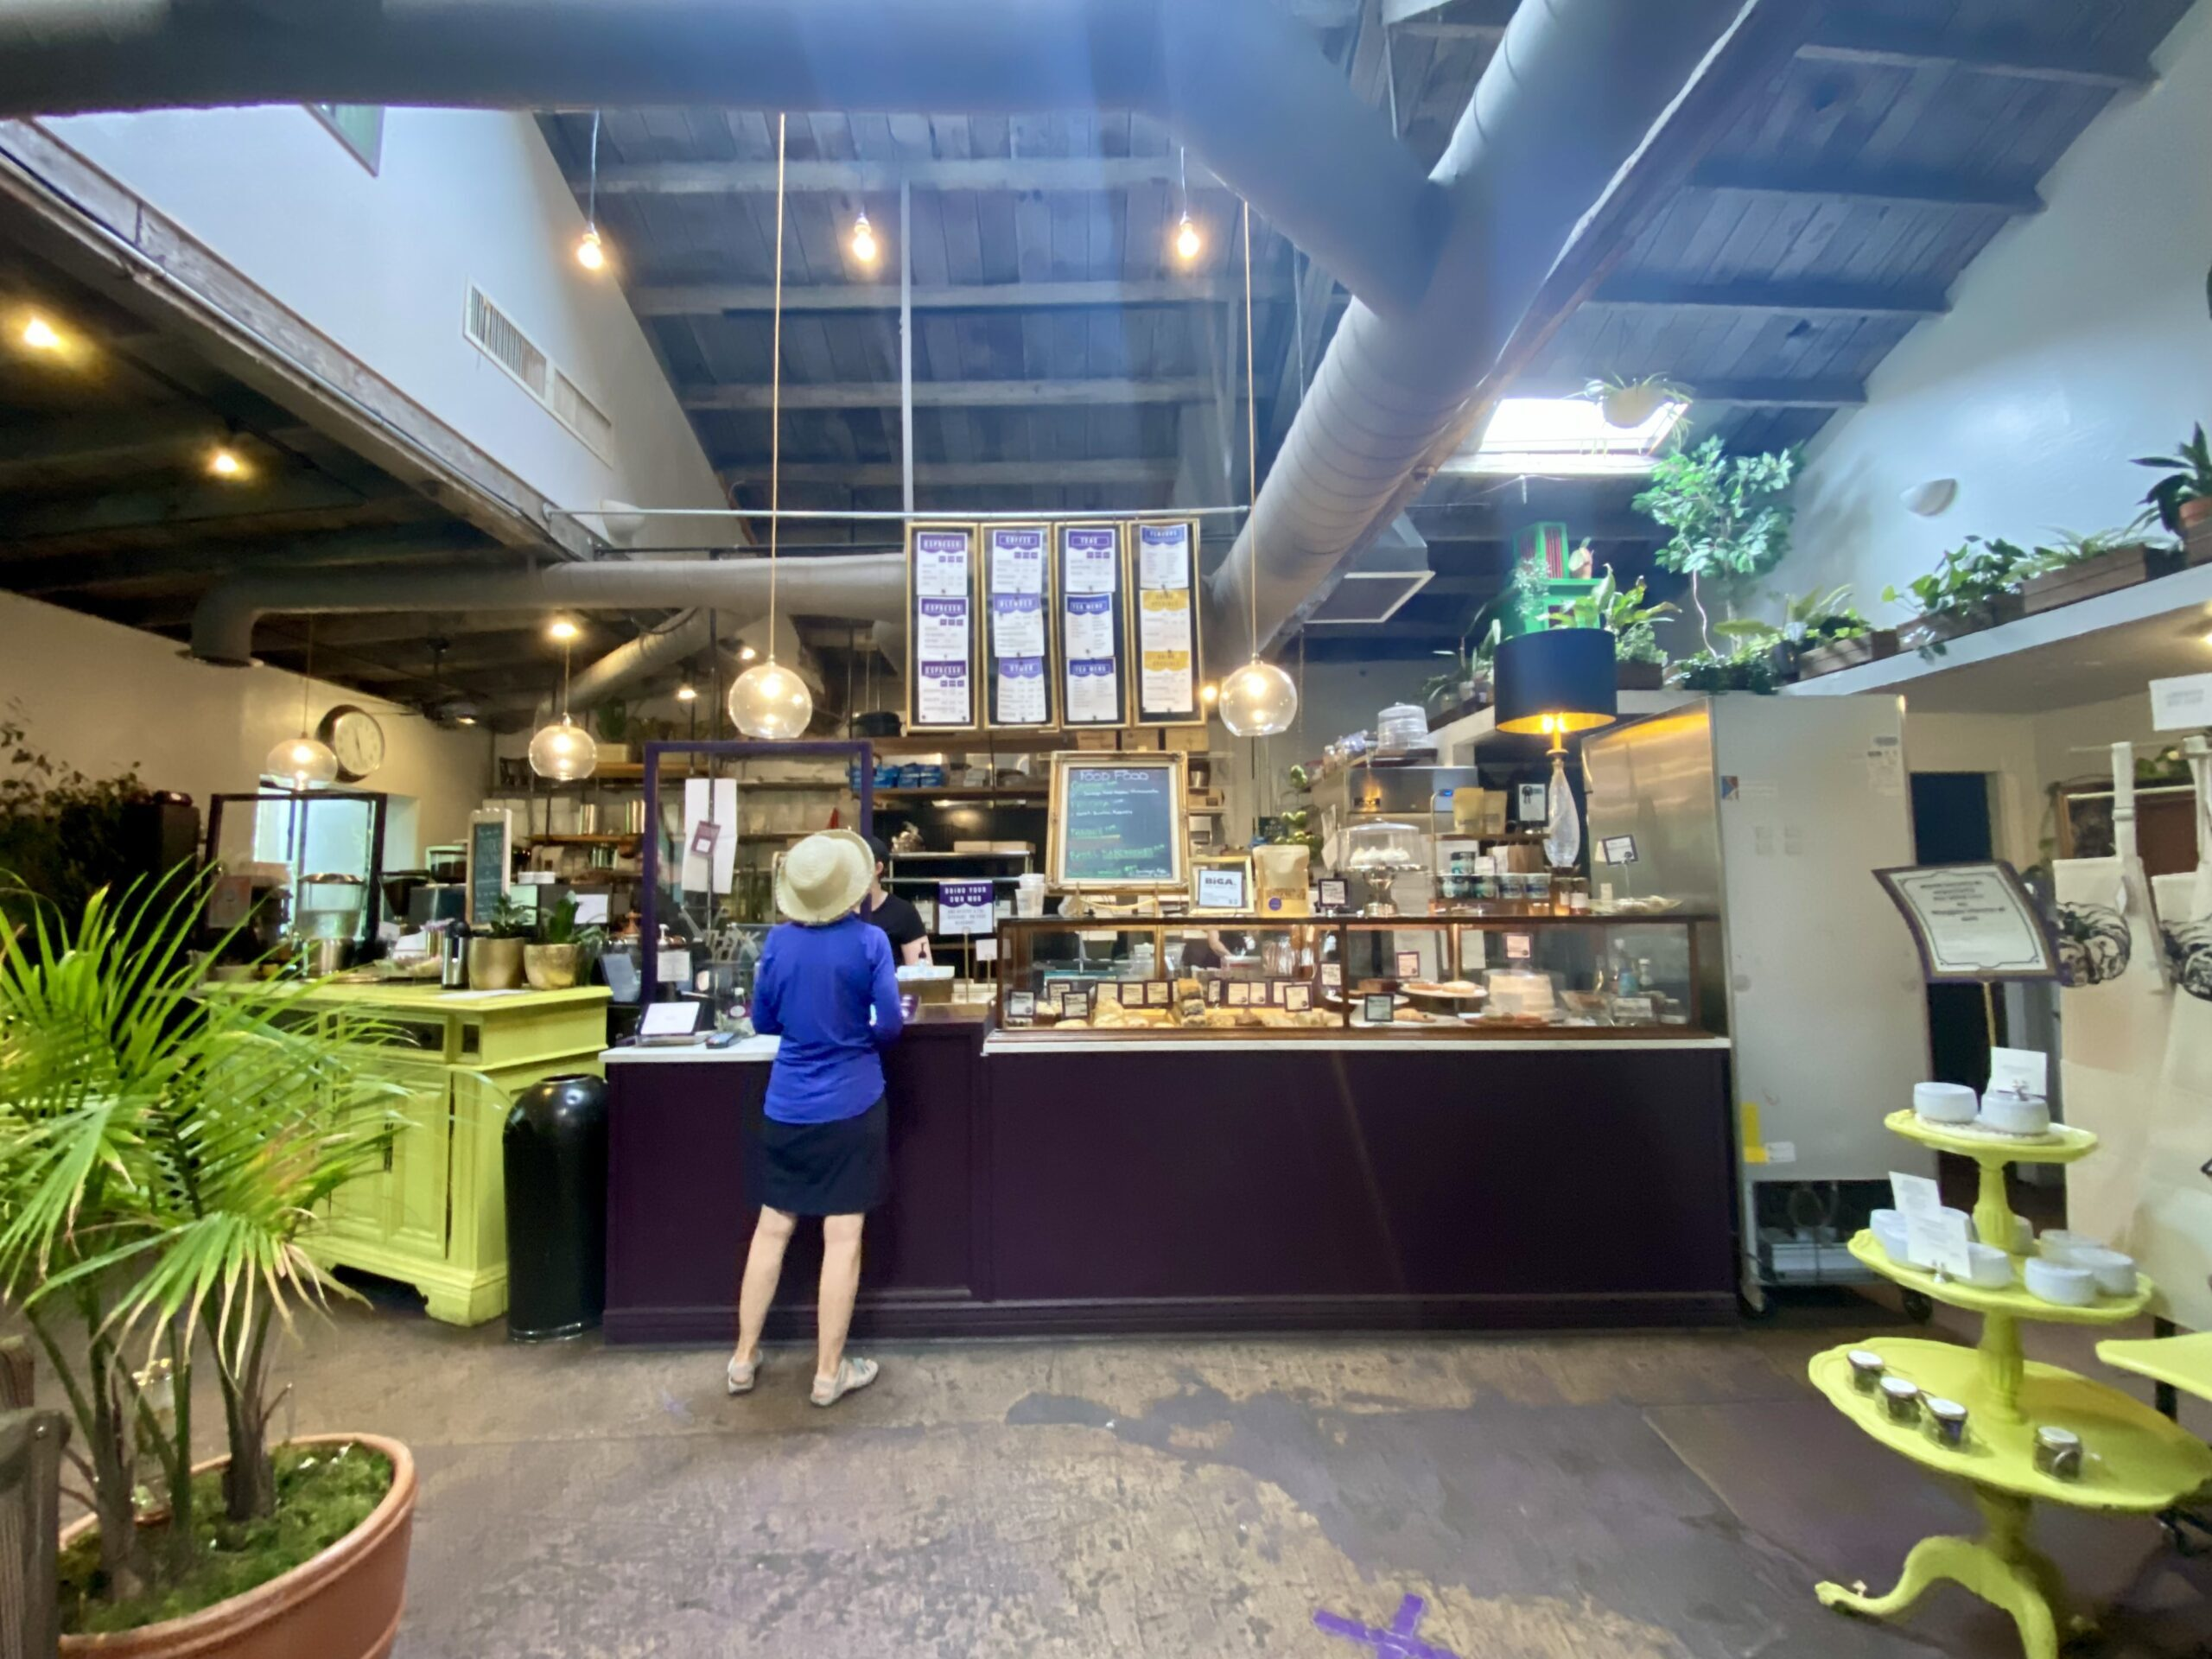 Things to do in Prescott AZ - Woman ordering at the counter of The Wild Iris